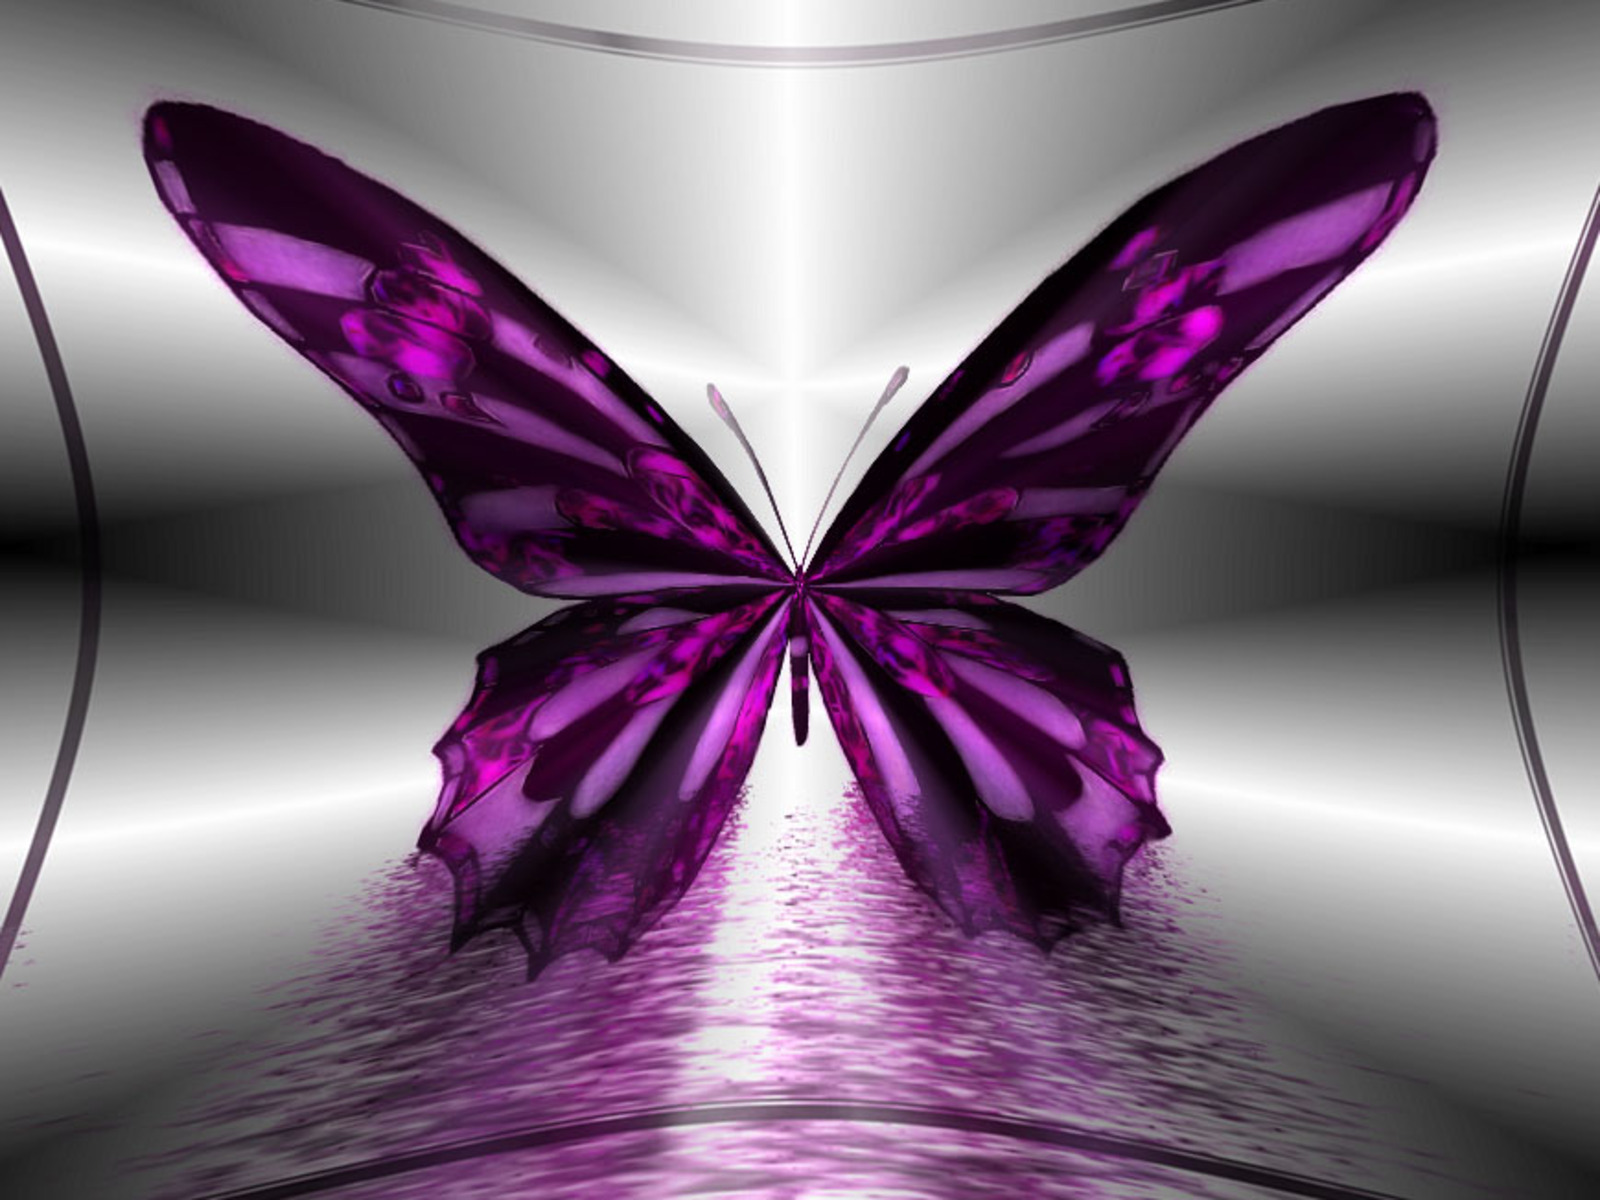 Wallpapers   HD Desktop Wallpapers Online Butterfly Wallpapers 1600x1200